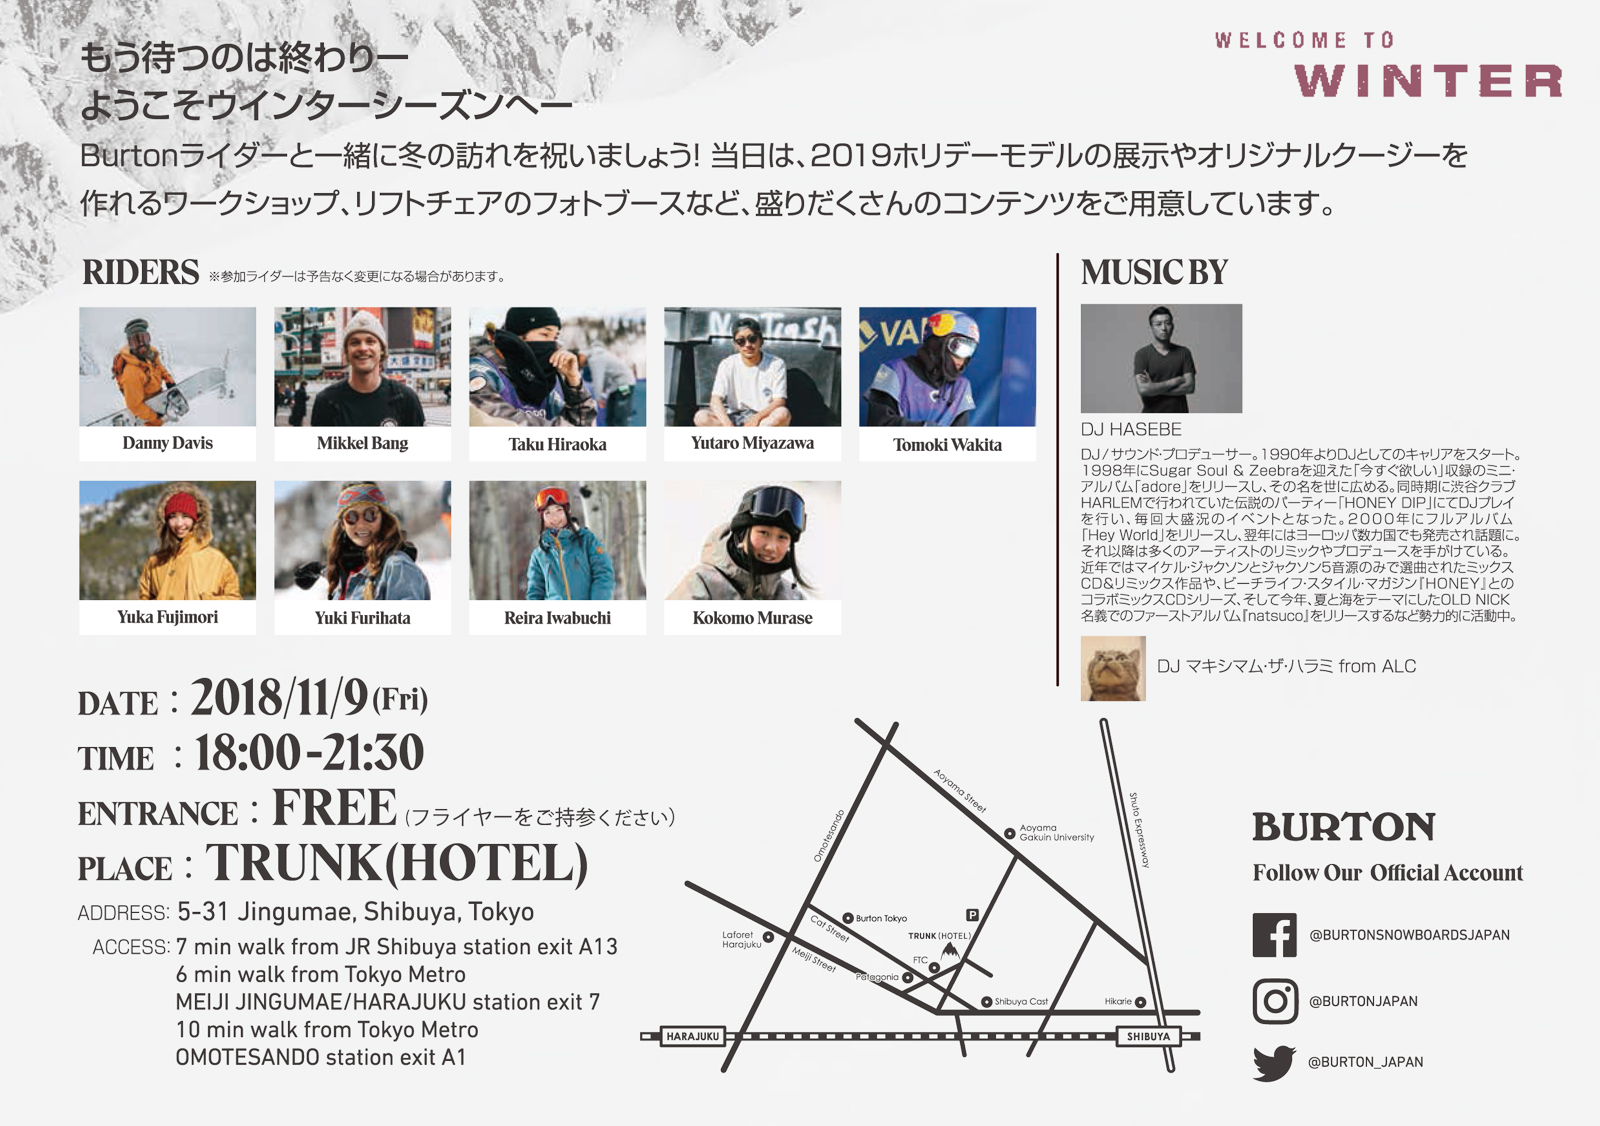 Burton-W2019-Welcome-to-Winter-flyerB